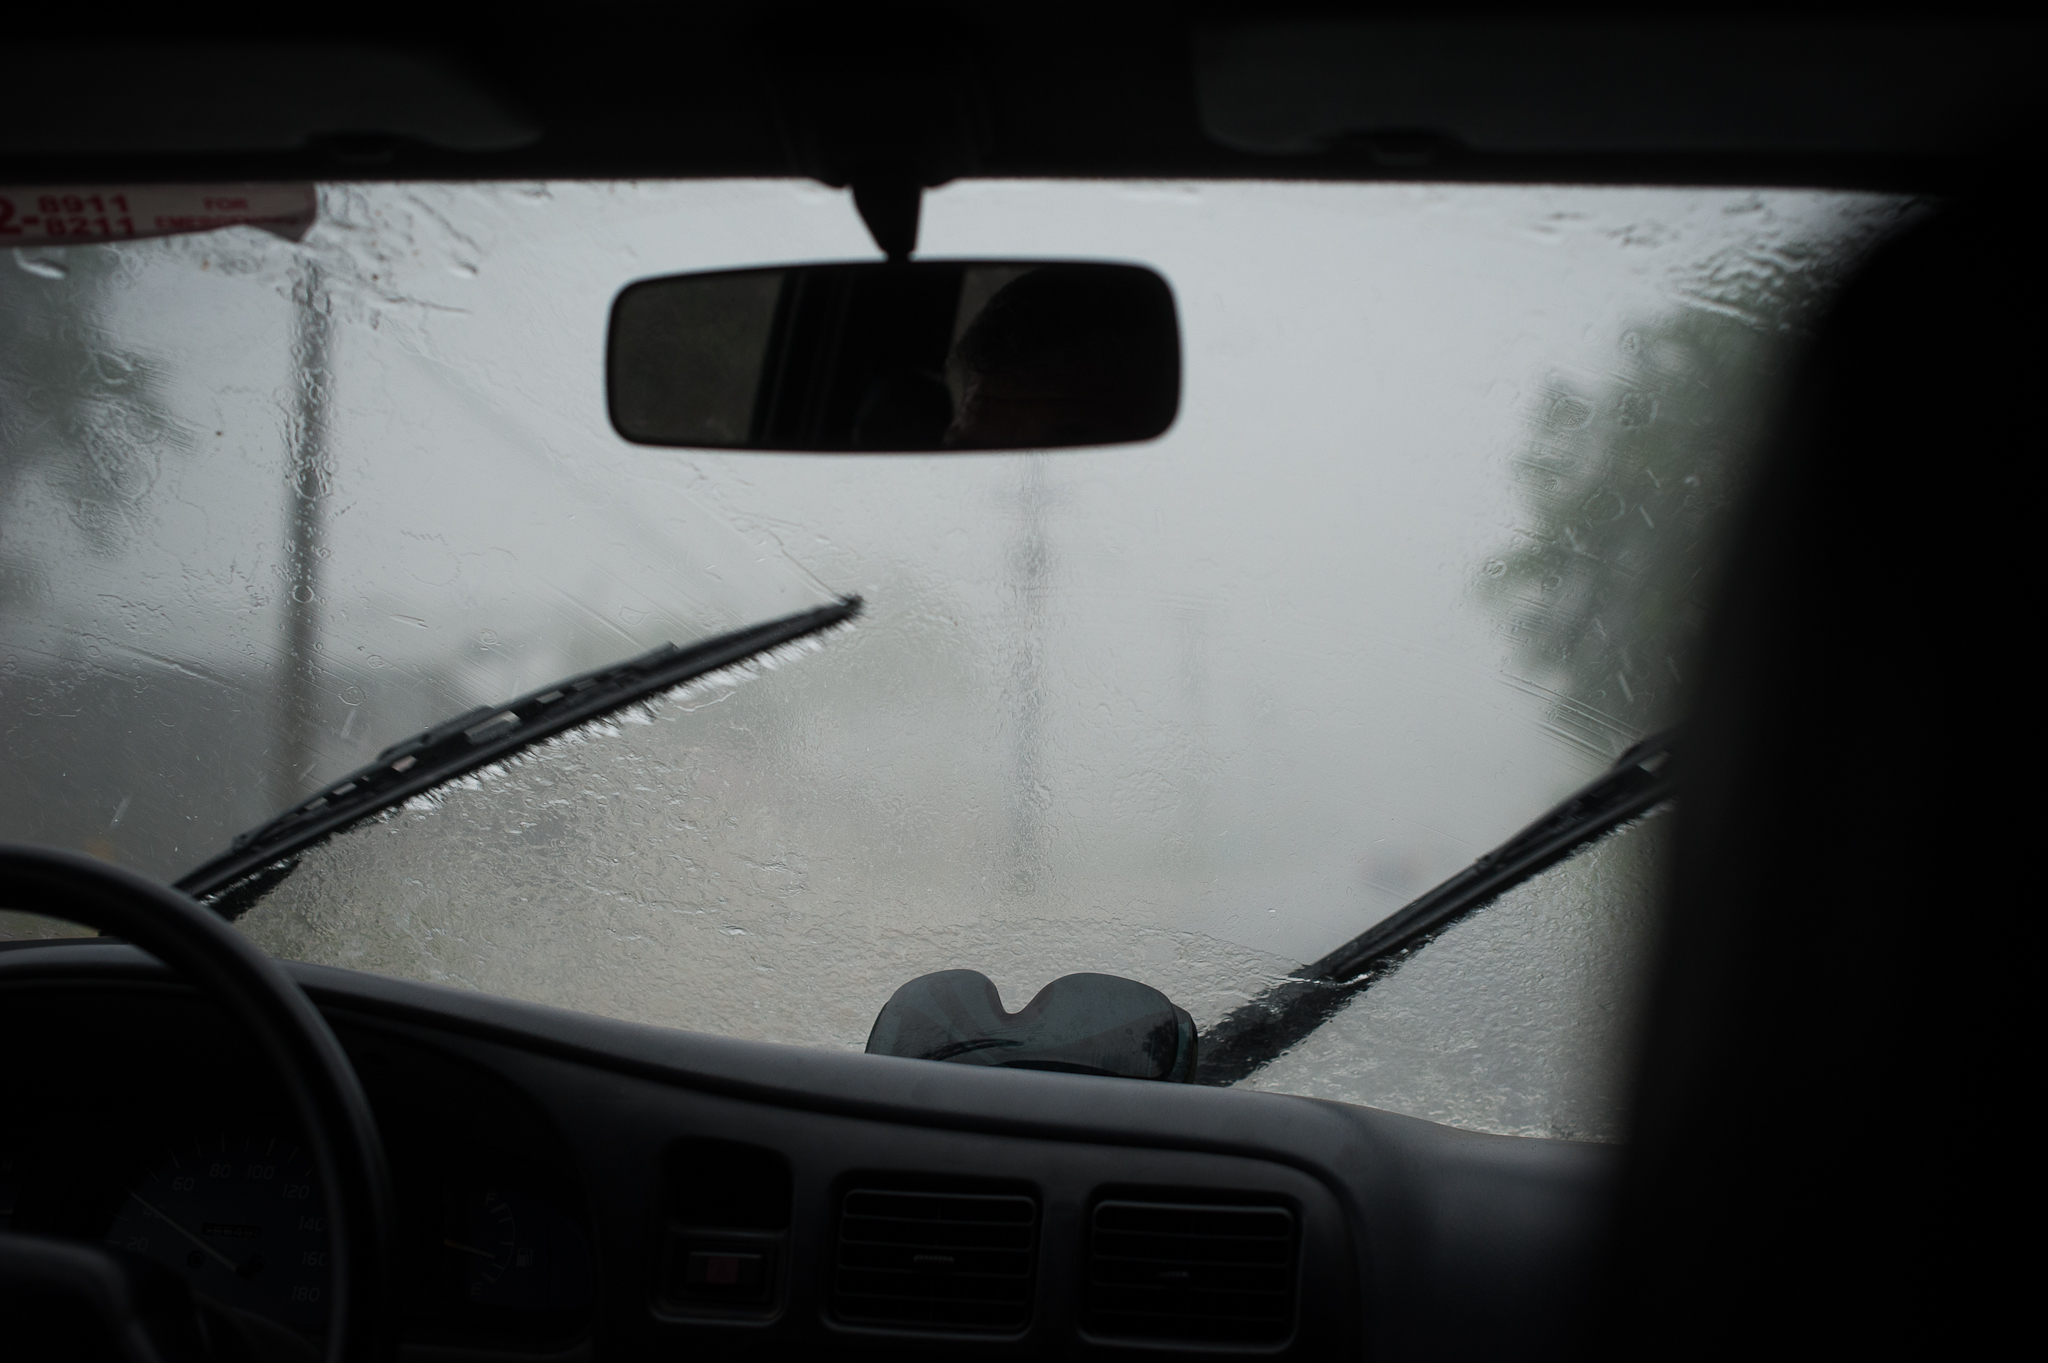 Car rainy season Panama - Research Fieldwork Montreal photographer Alex Tran